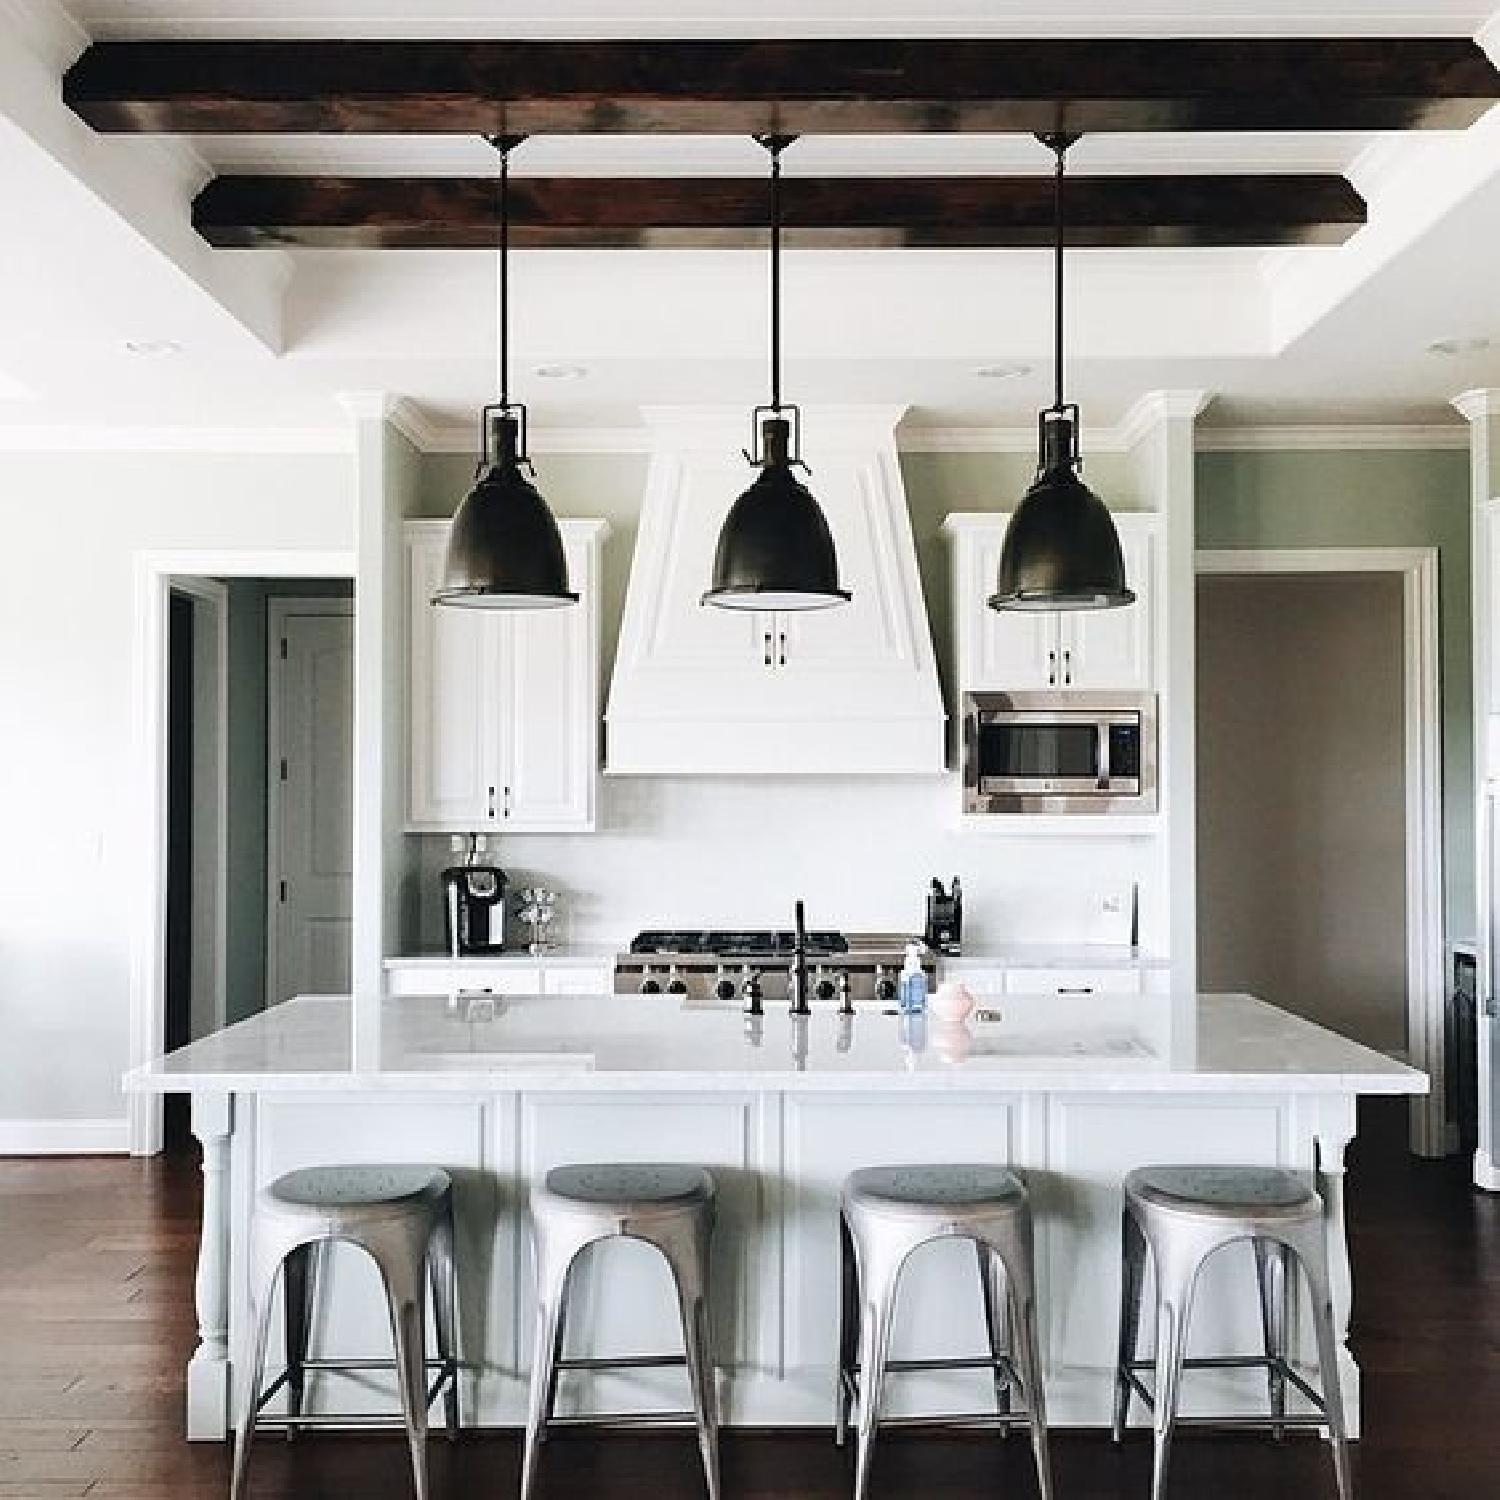 Restoration Hardware Remy Backless Counter Stools-2